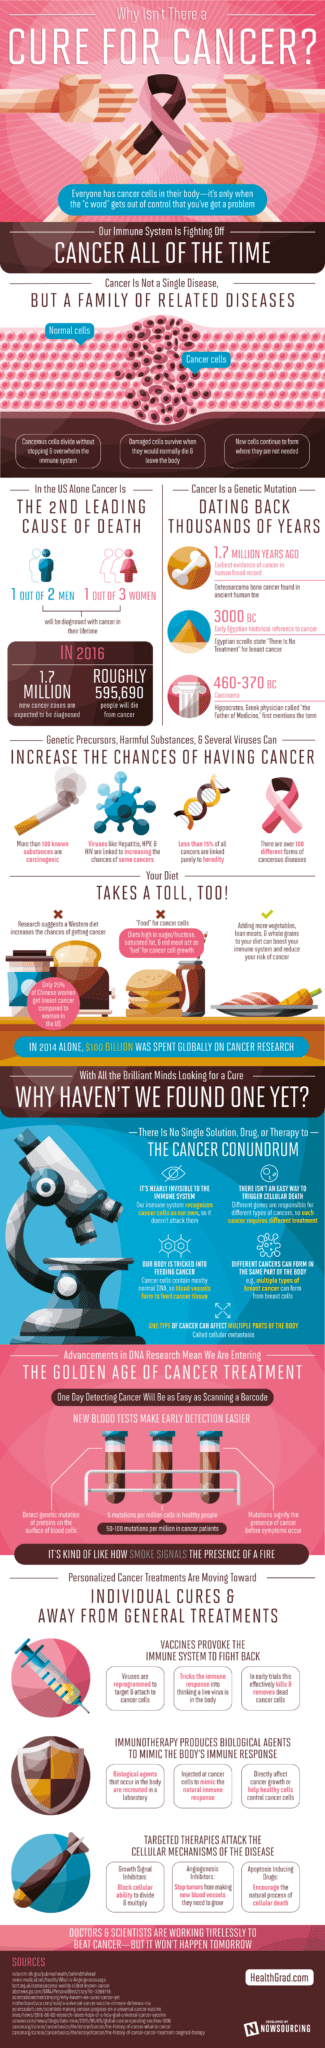 why-no-cancer-cure-yet